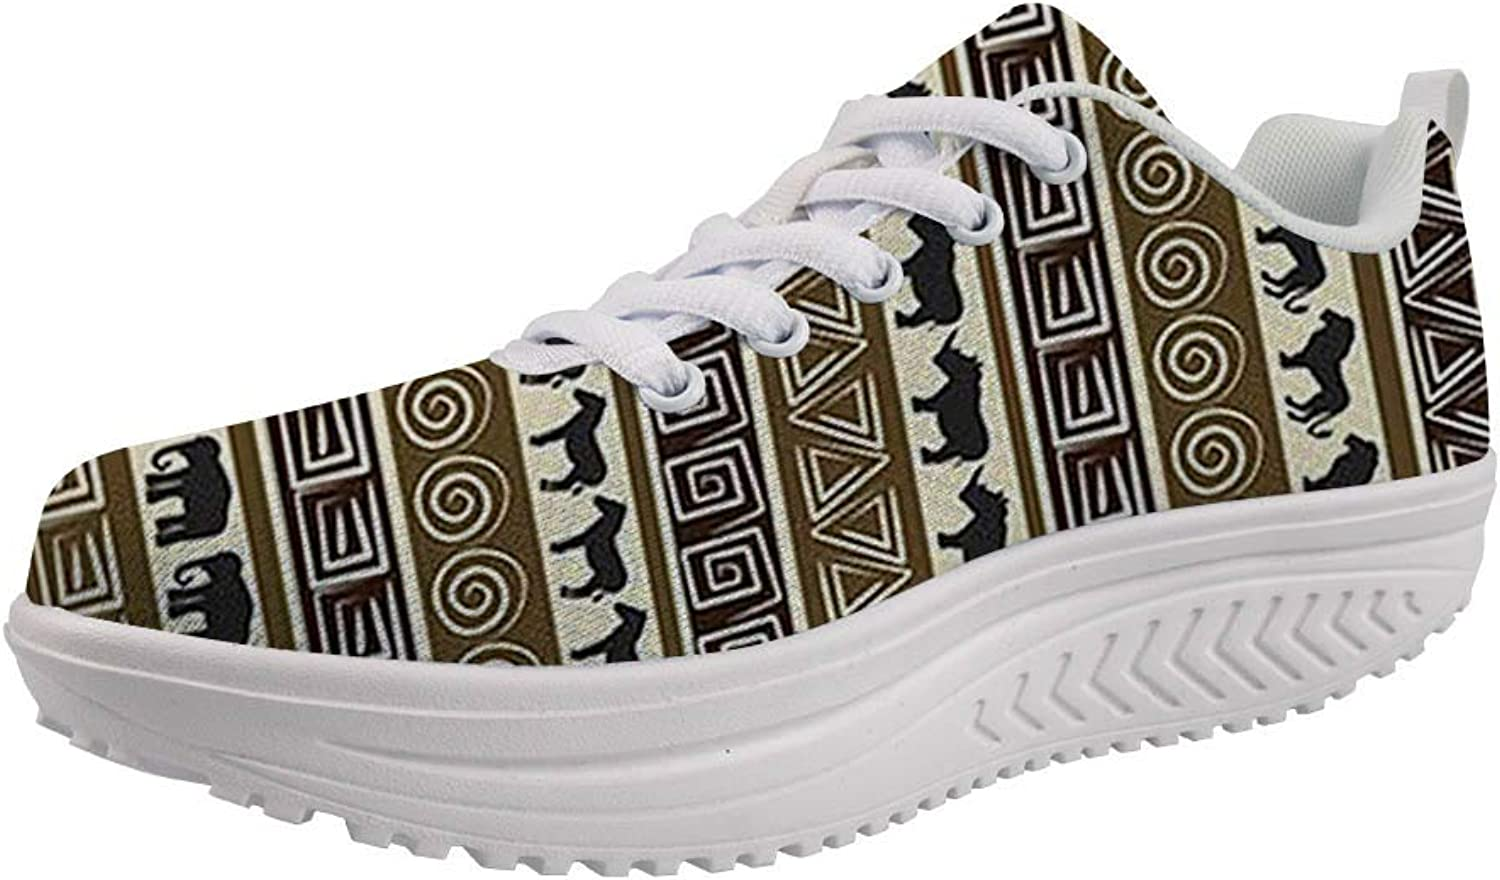 Youngerbaby Vintage African Swing Sneakers for Women Casual Wedge Walking shoes